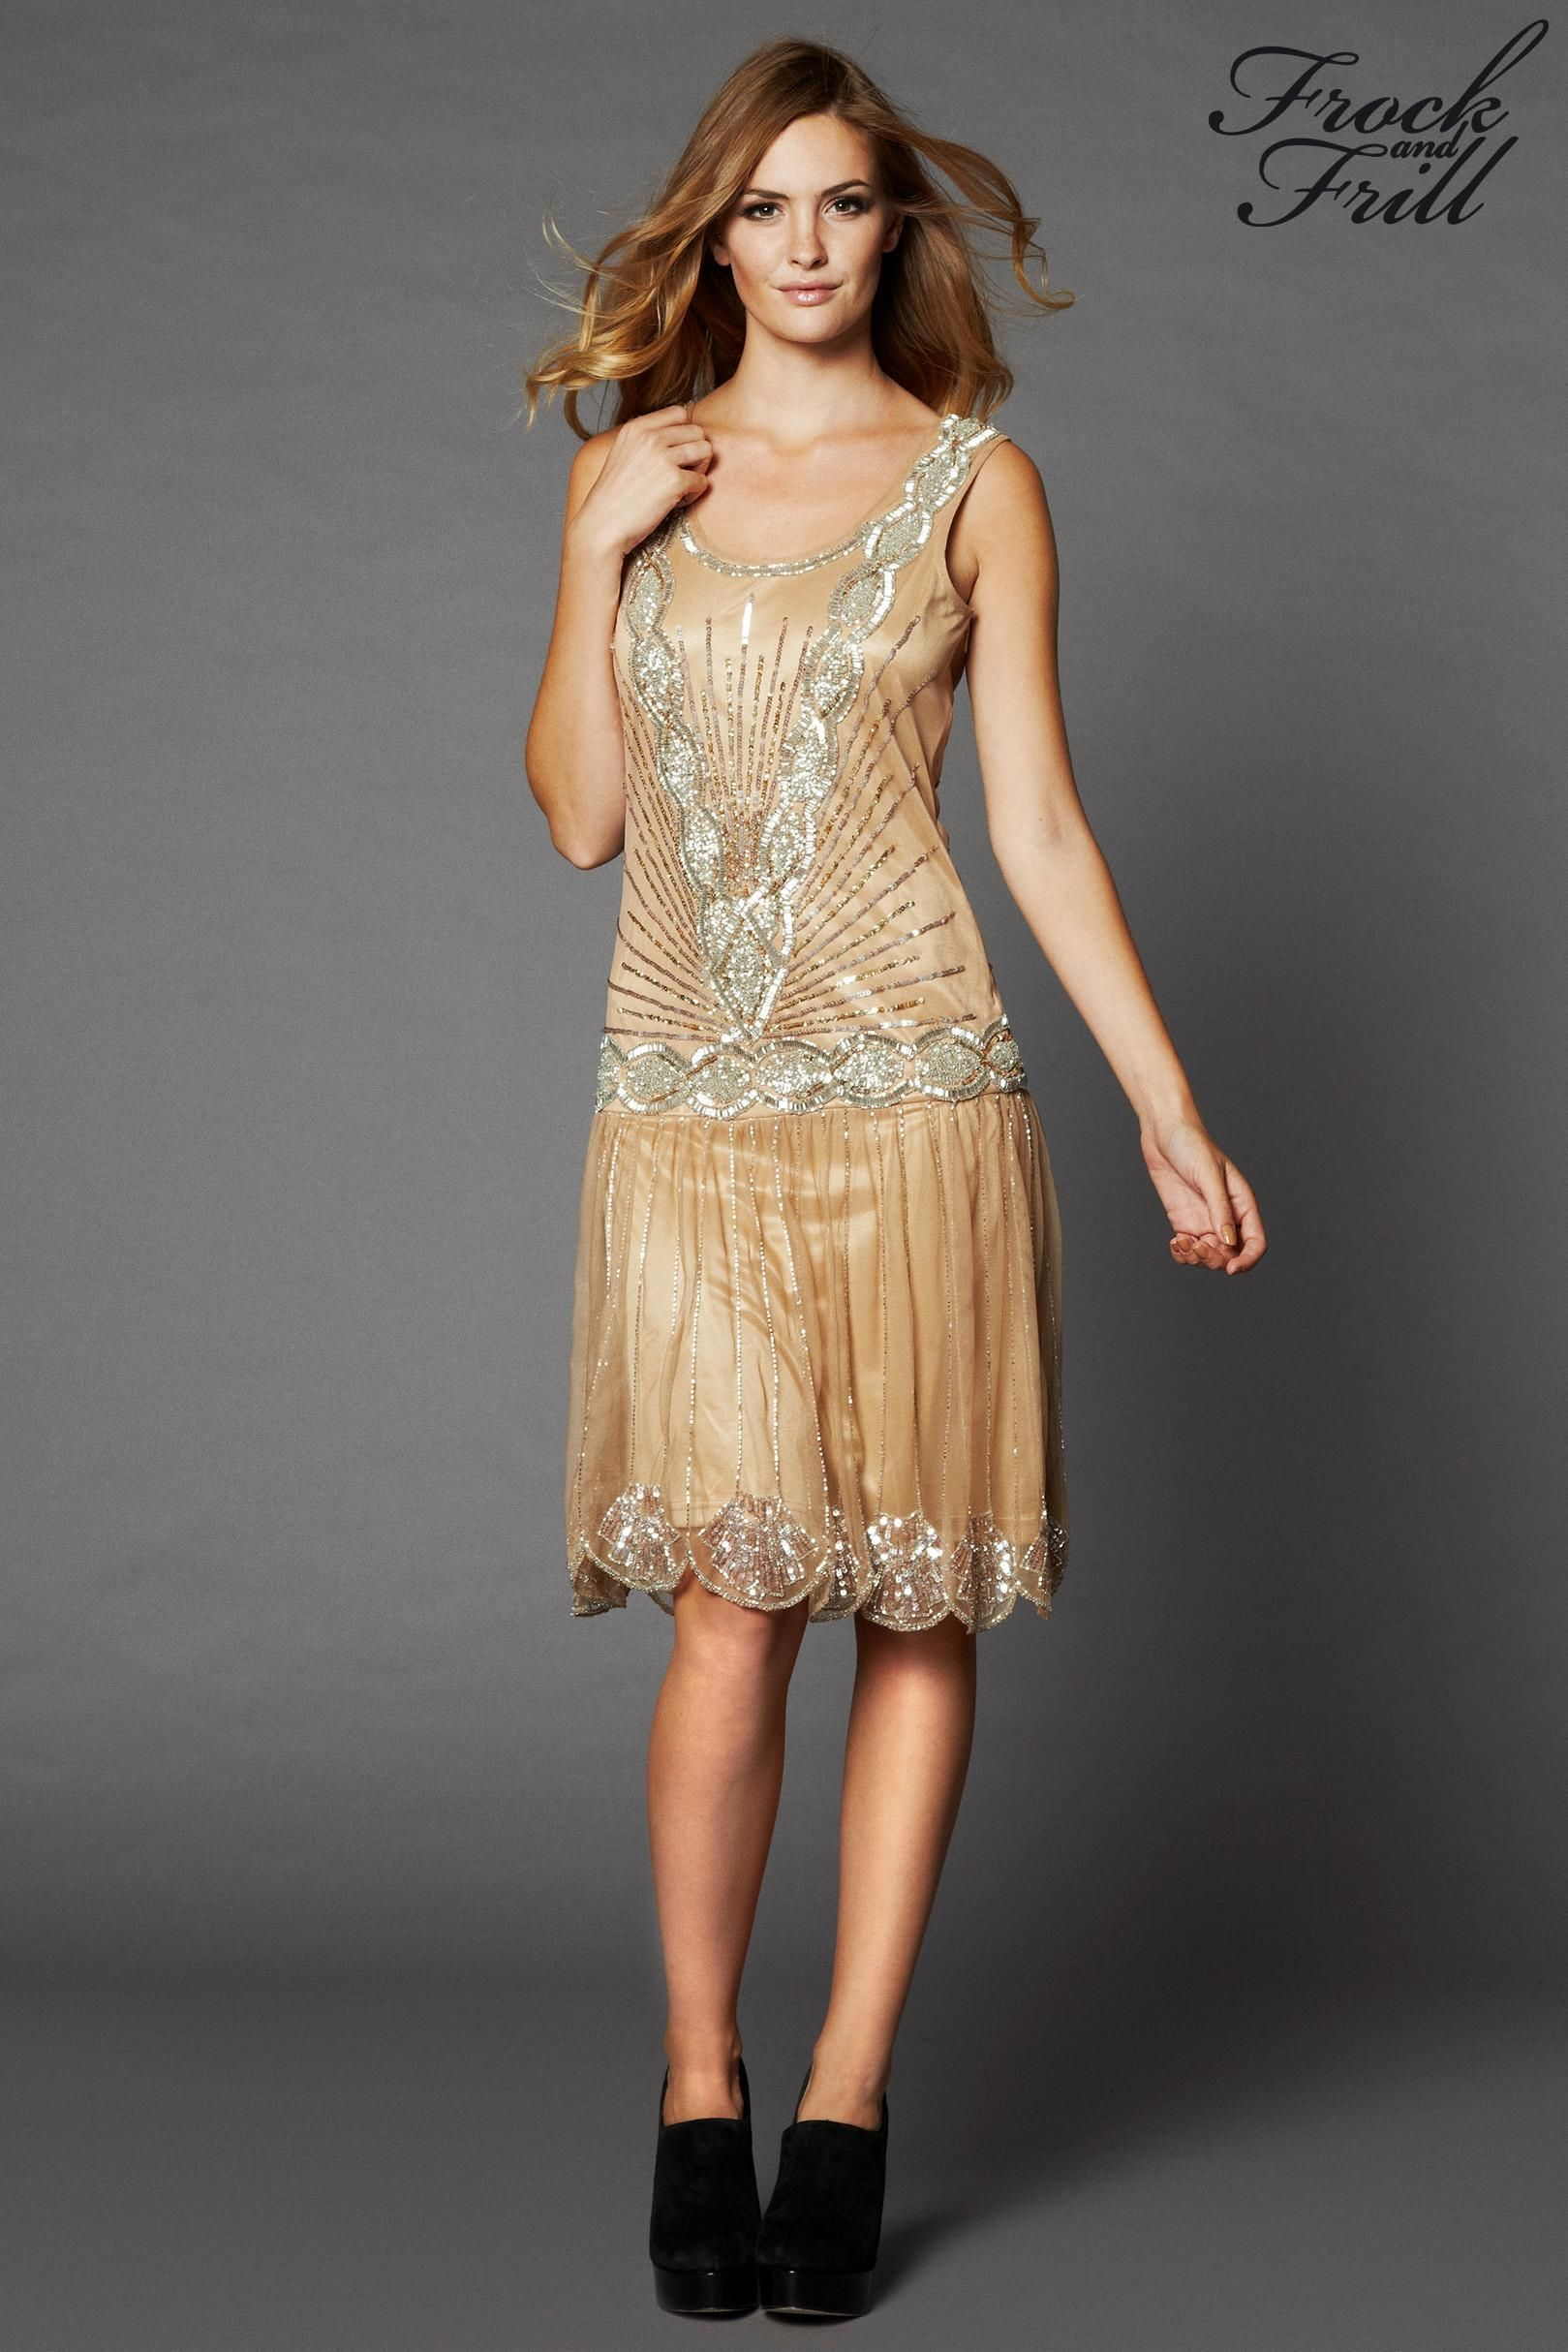 1920 s style day dresses uk cheap